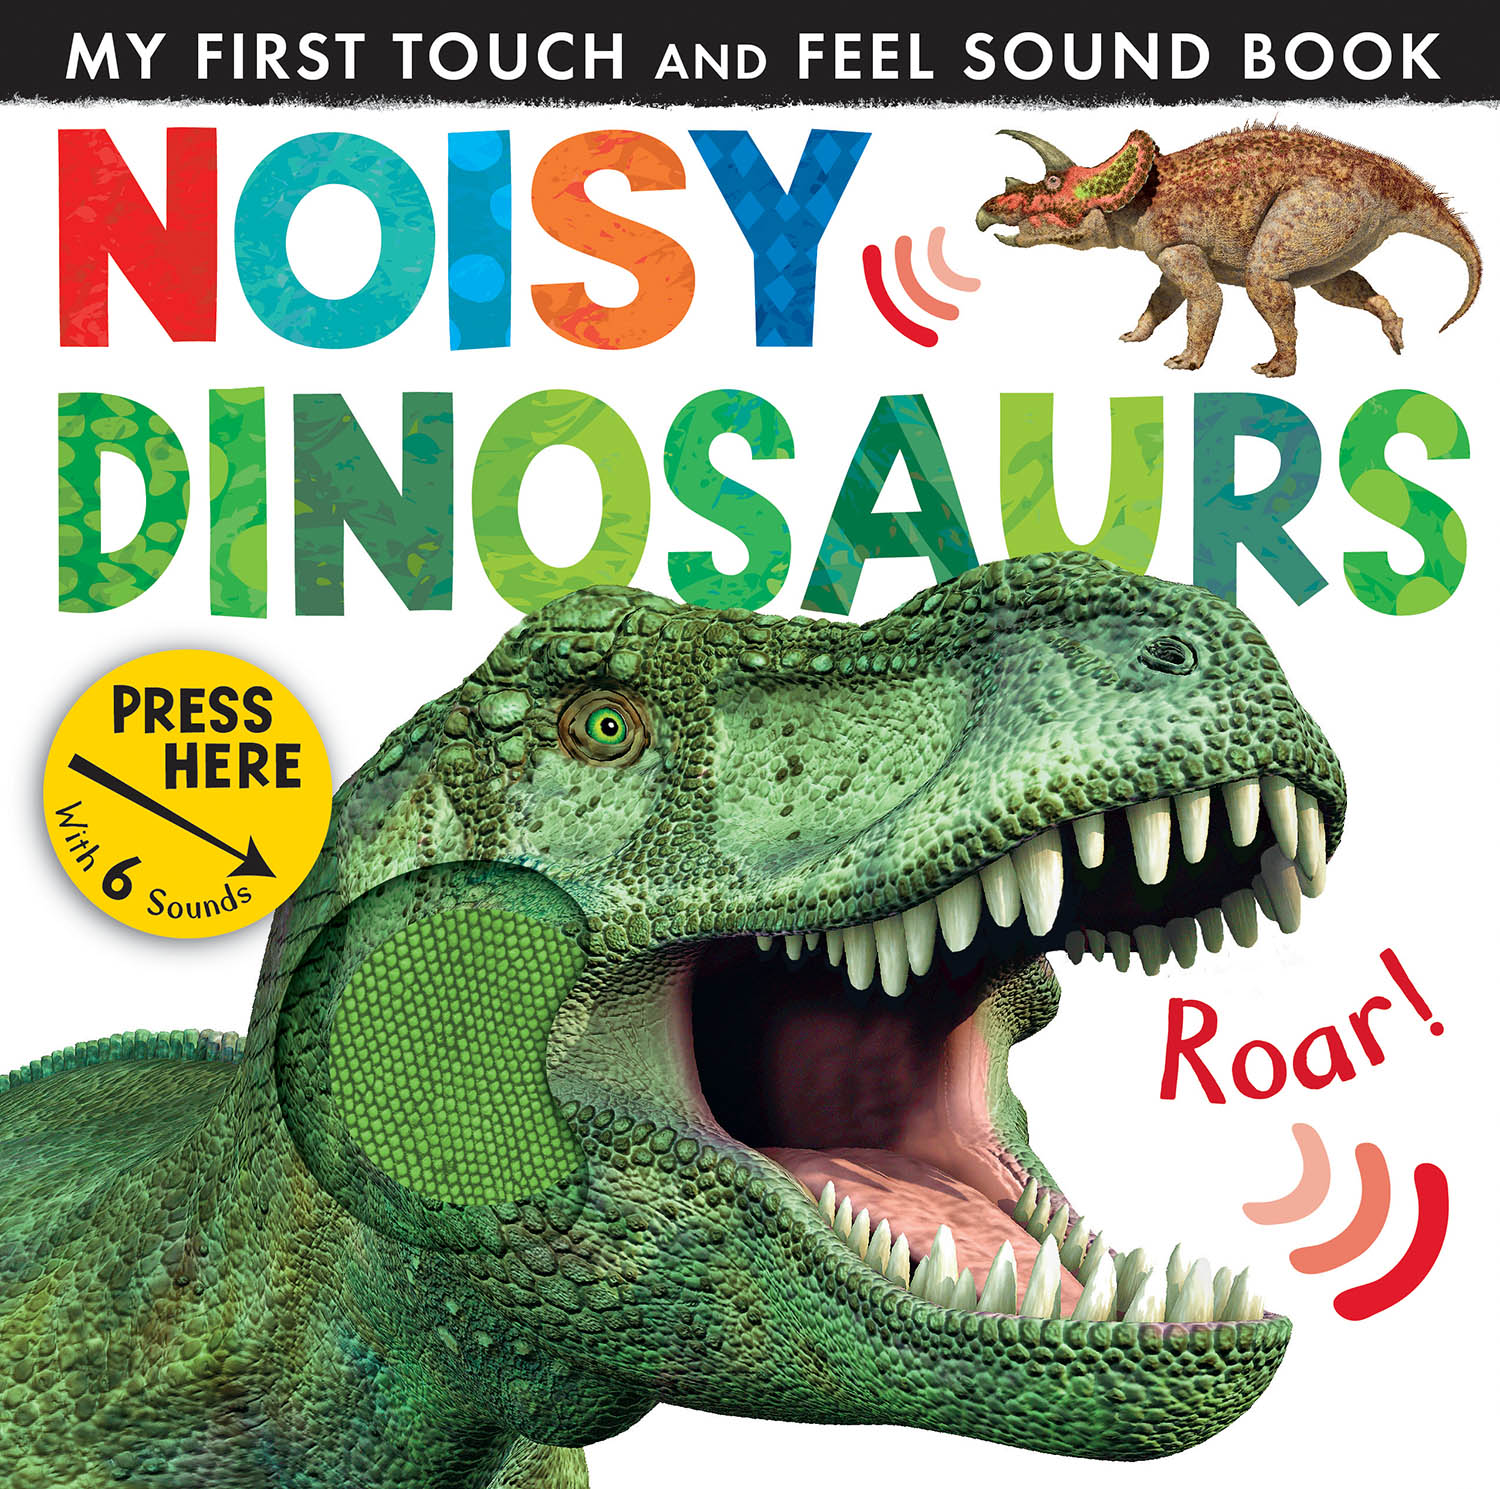 Noisy Dinosaurs book cover